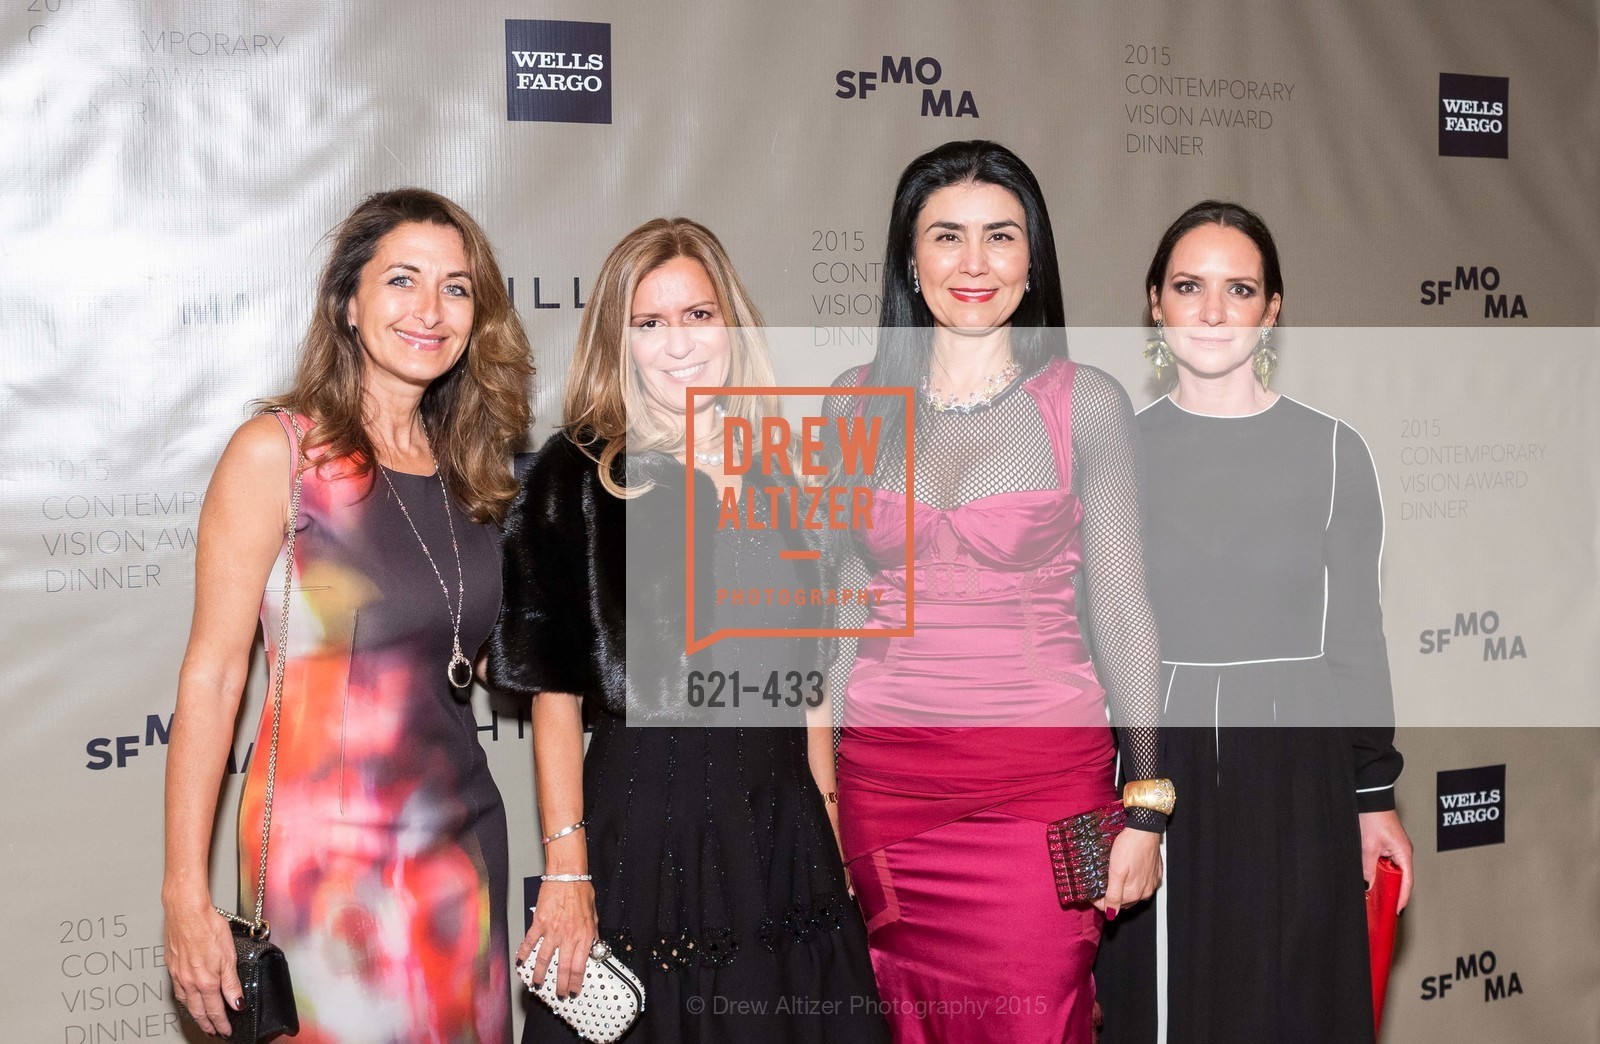 Angela De La Housaye, Yvette Esserman, Afsaneh Akhtari, Courtney Dallaire, SFMOMA Contemporary Vision Award, Regency Ballroom. 1300 Van Ness, November 3rd, 2015,Drew Altizer, Drew Altizer Photography, full-service agency, private events, San Francisco photographer, photographer california